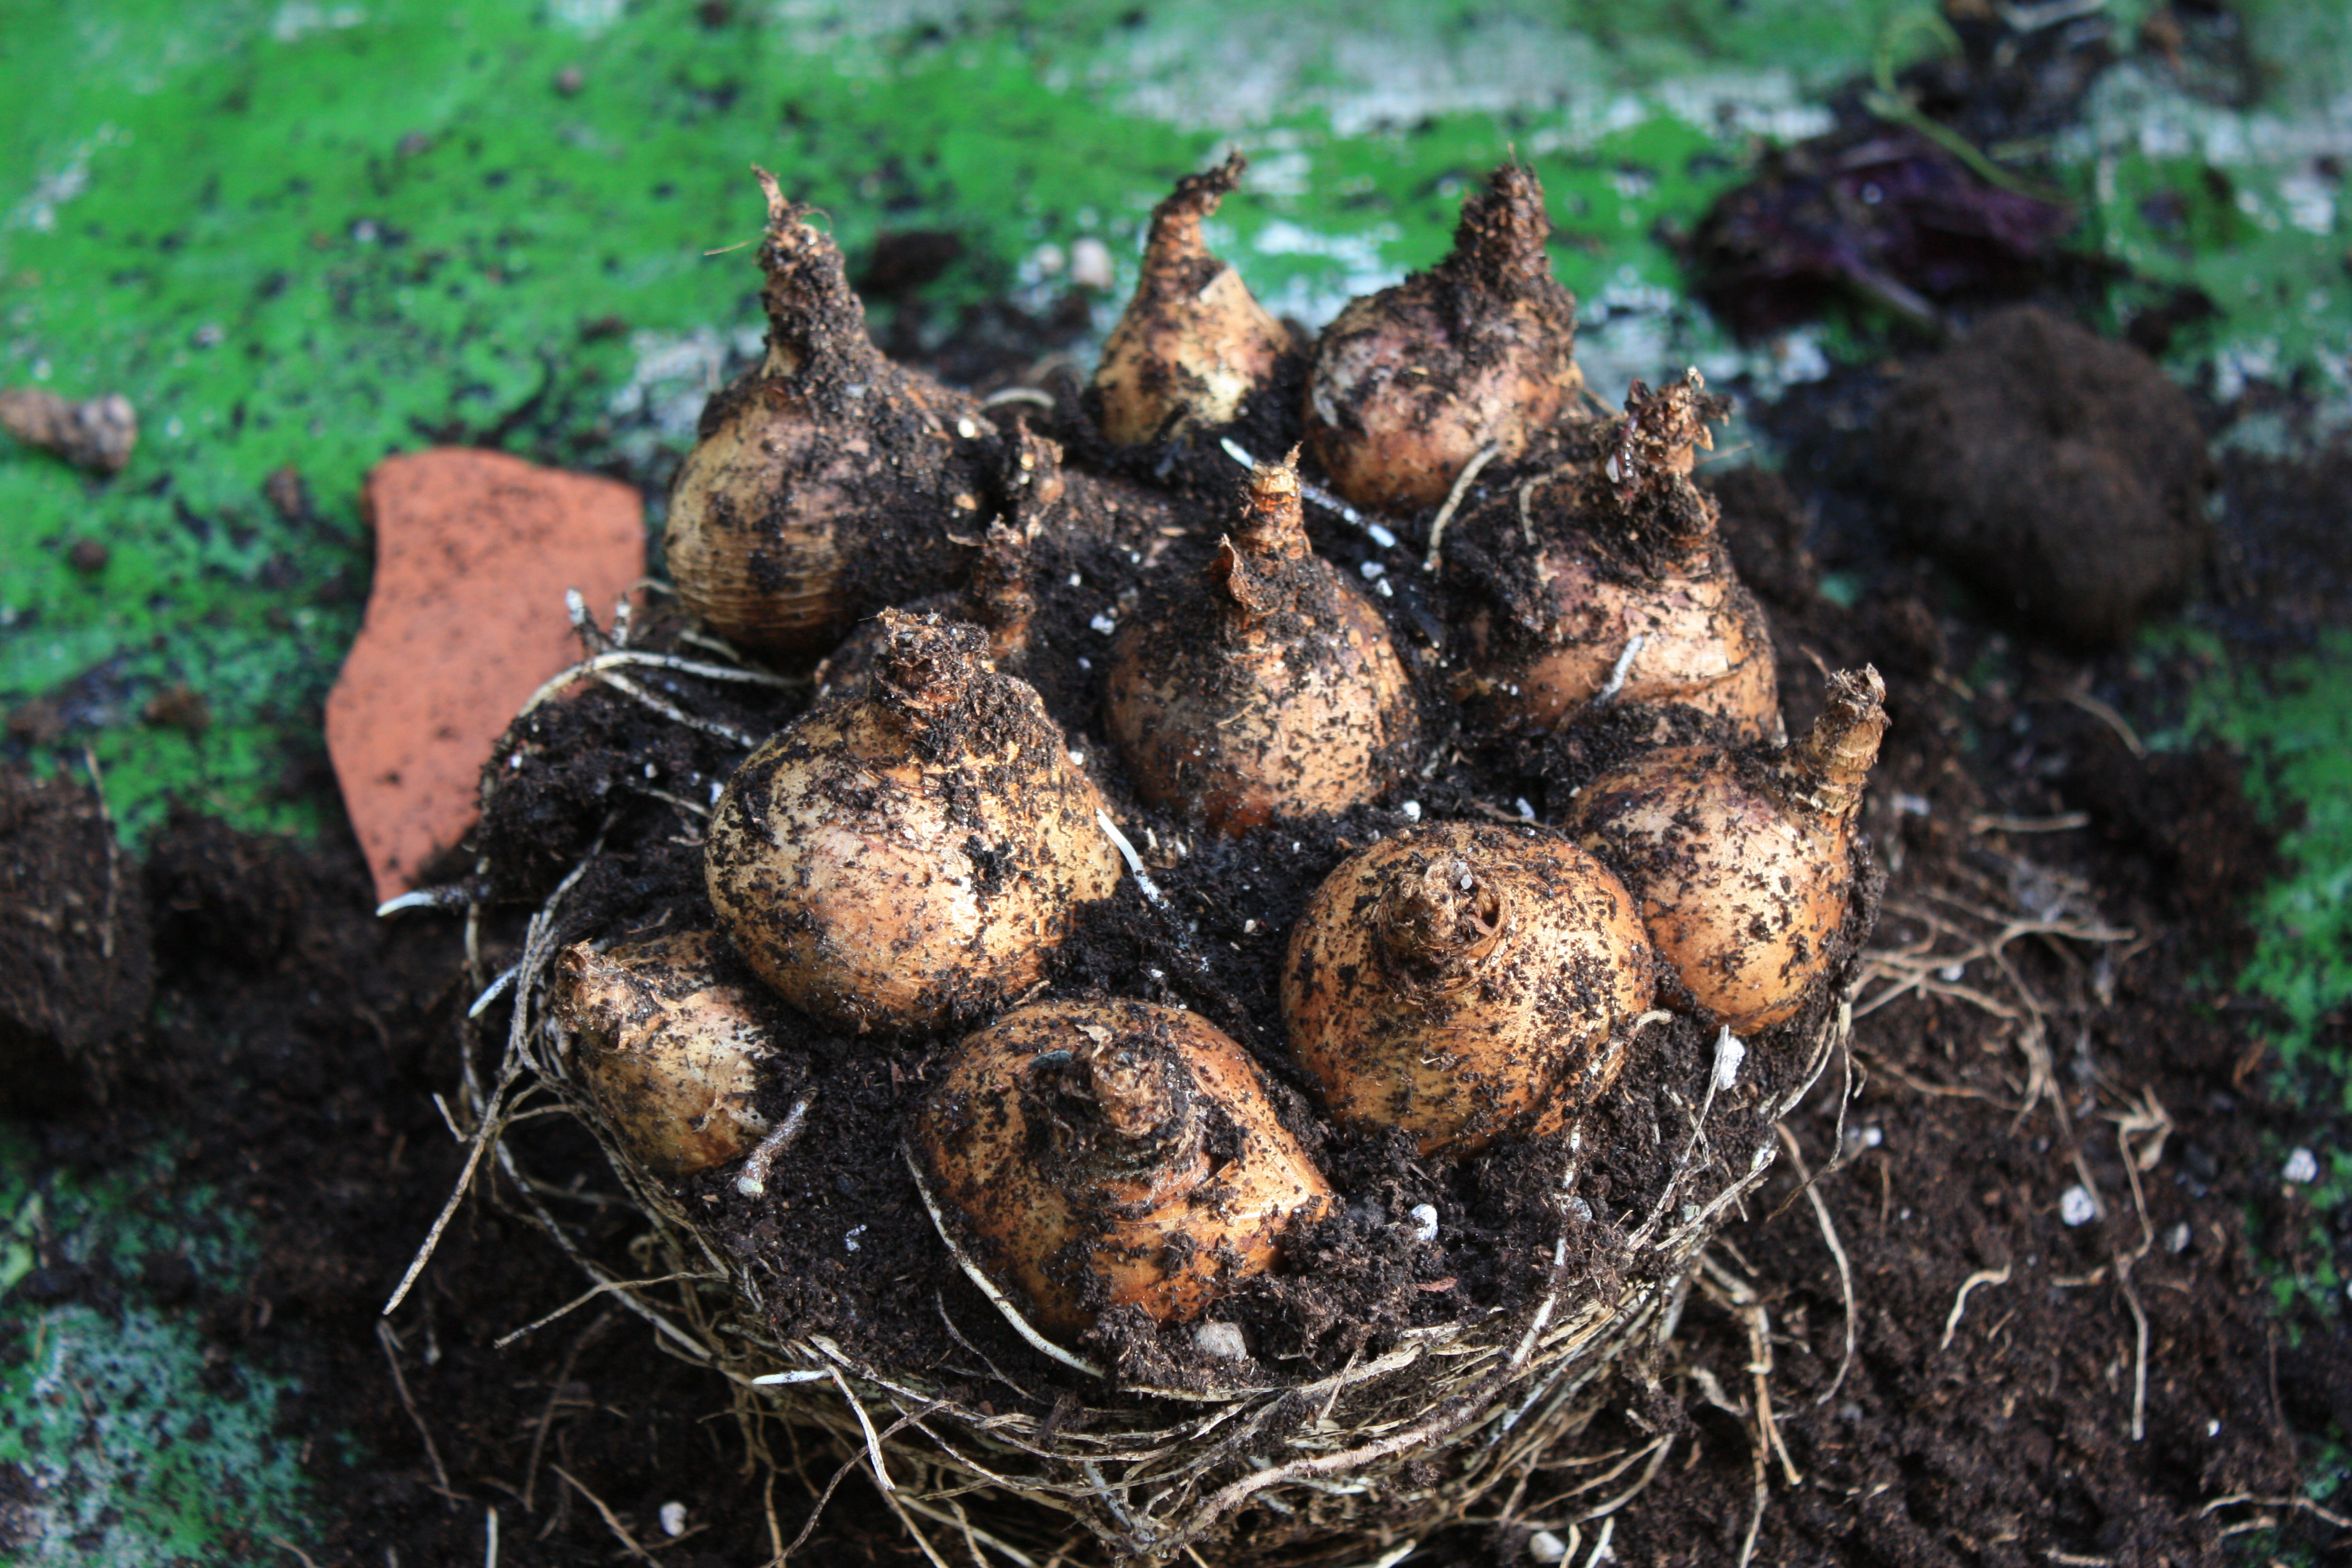 When how to plant daffodil bulbs - Start